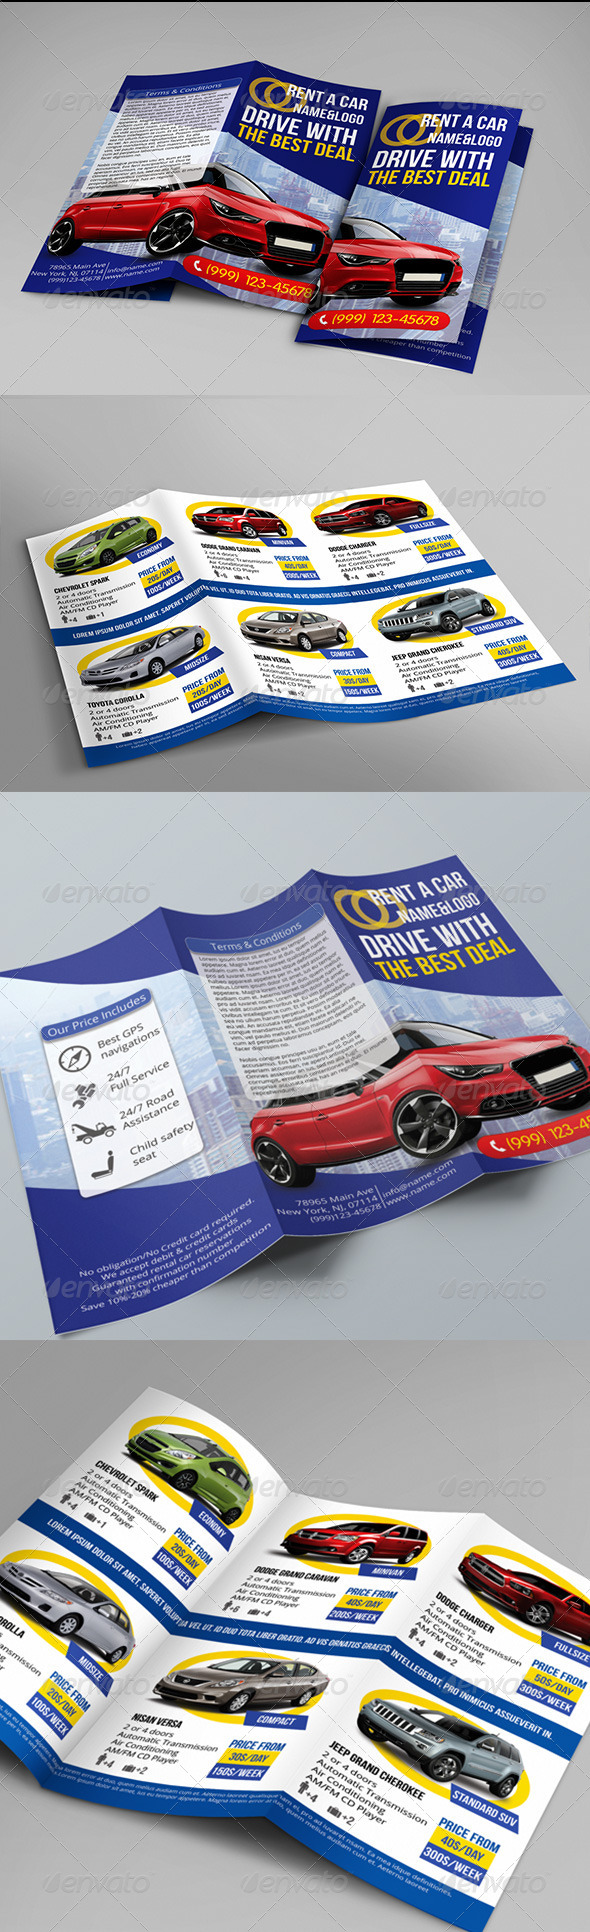 Rent a Car Trifold